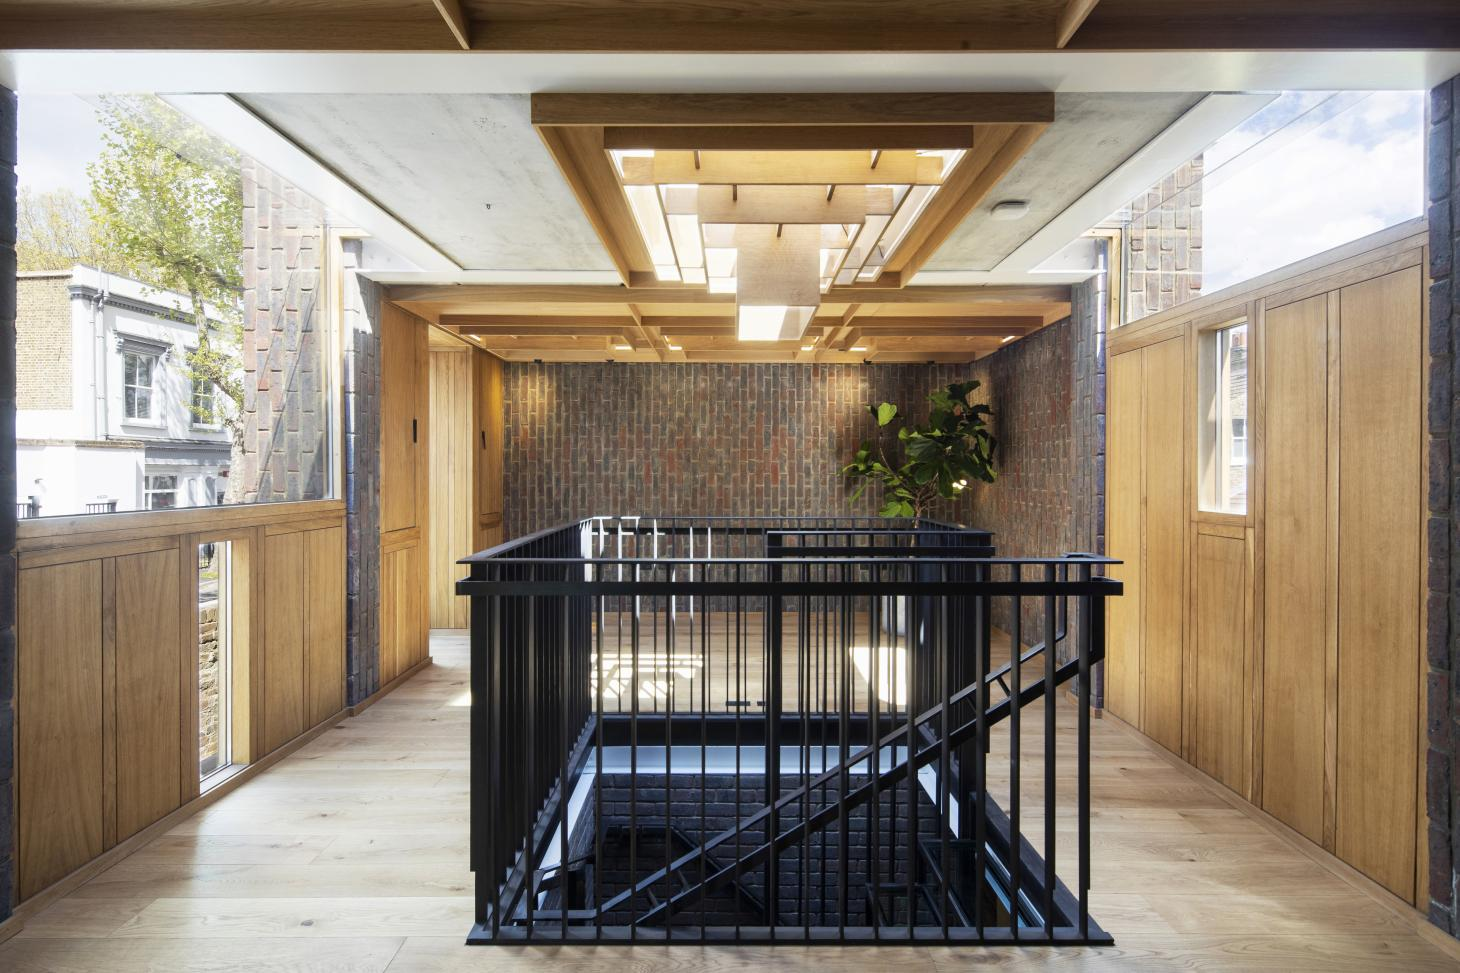 interior showing central metal staircase at Southwark brick house by Satish Jassal